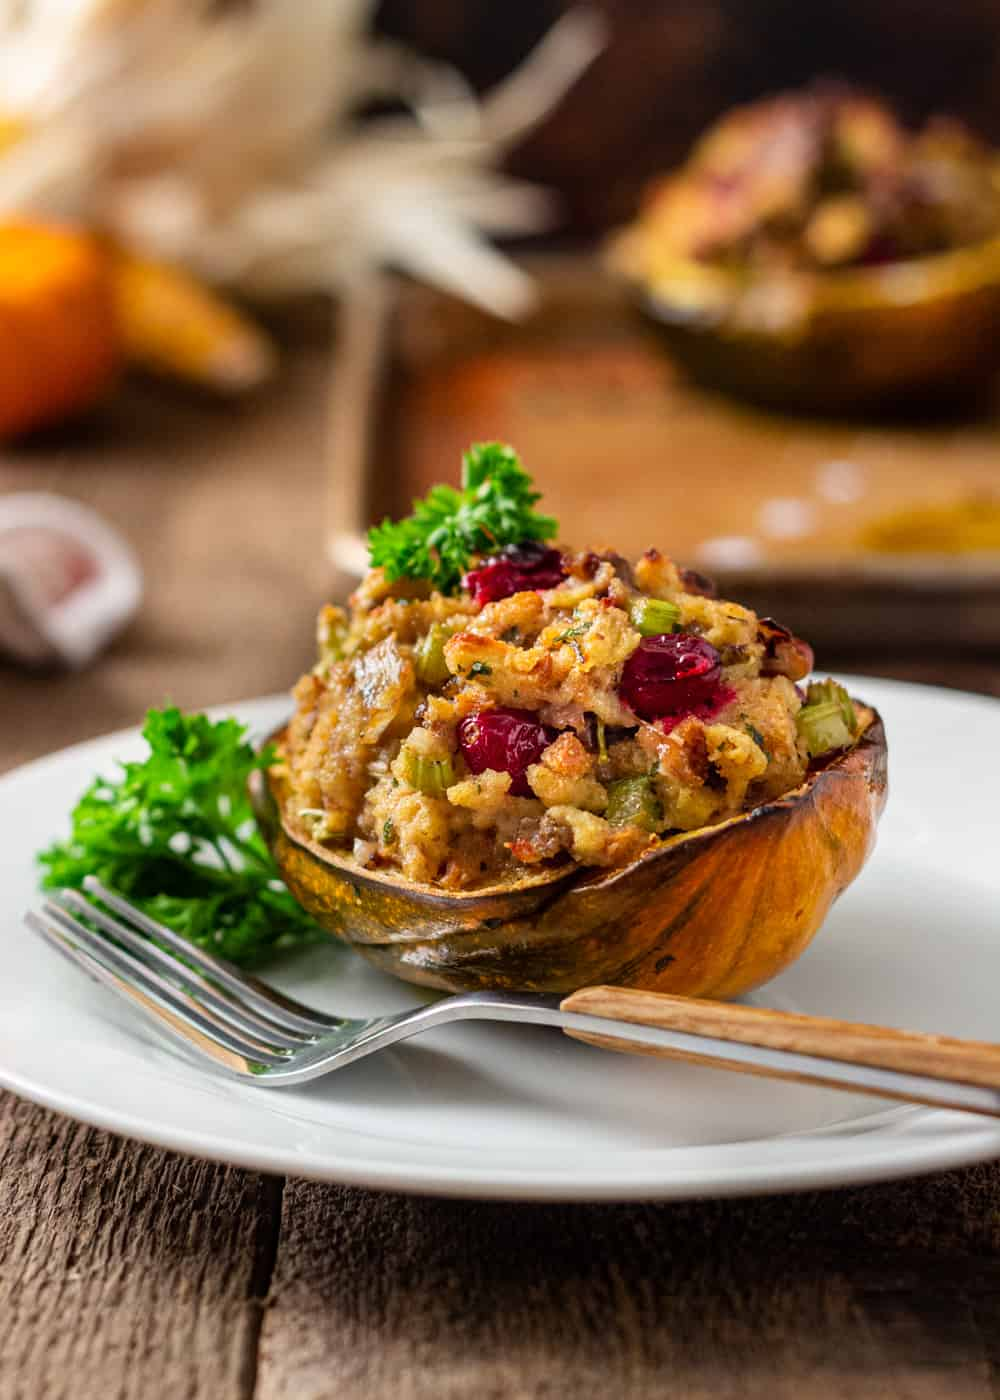 plated dinner of sausage stuffed acorn squash